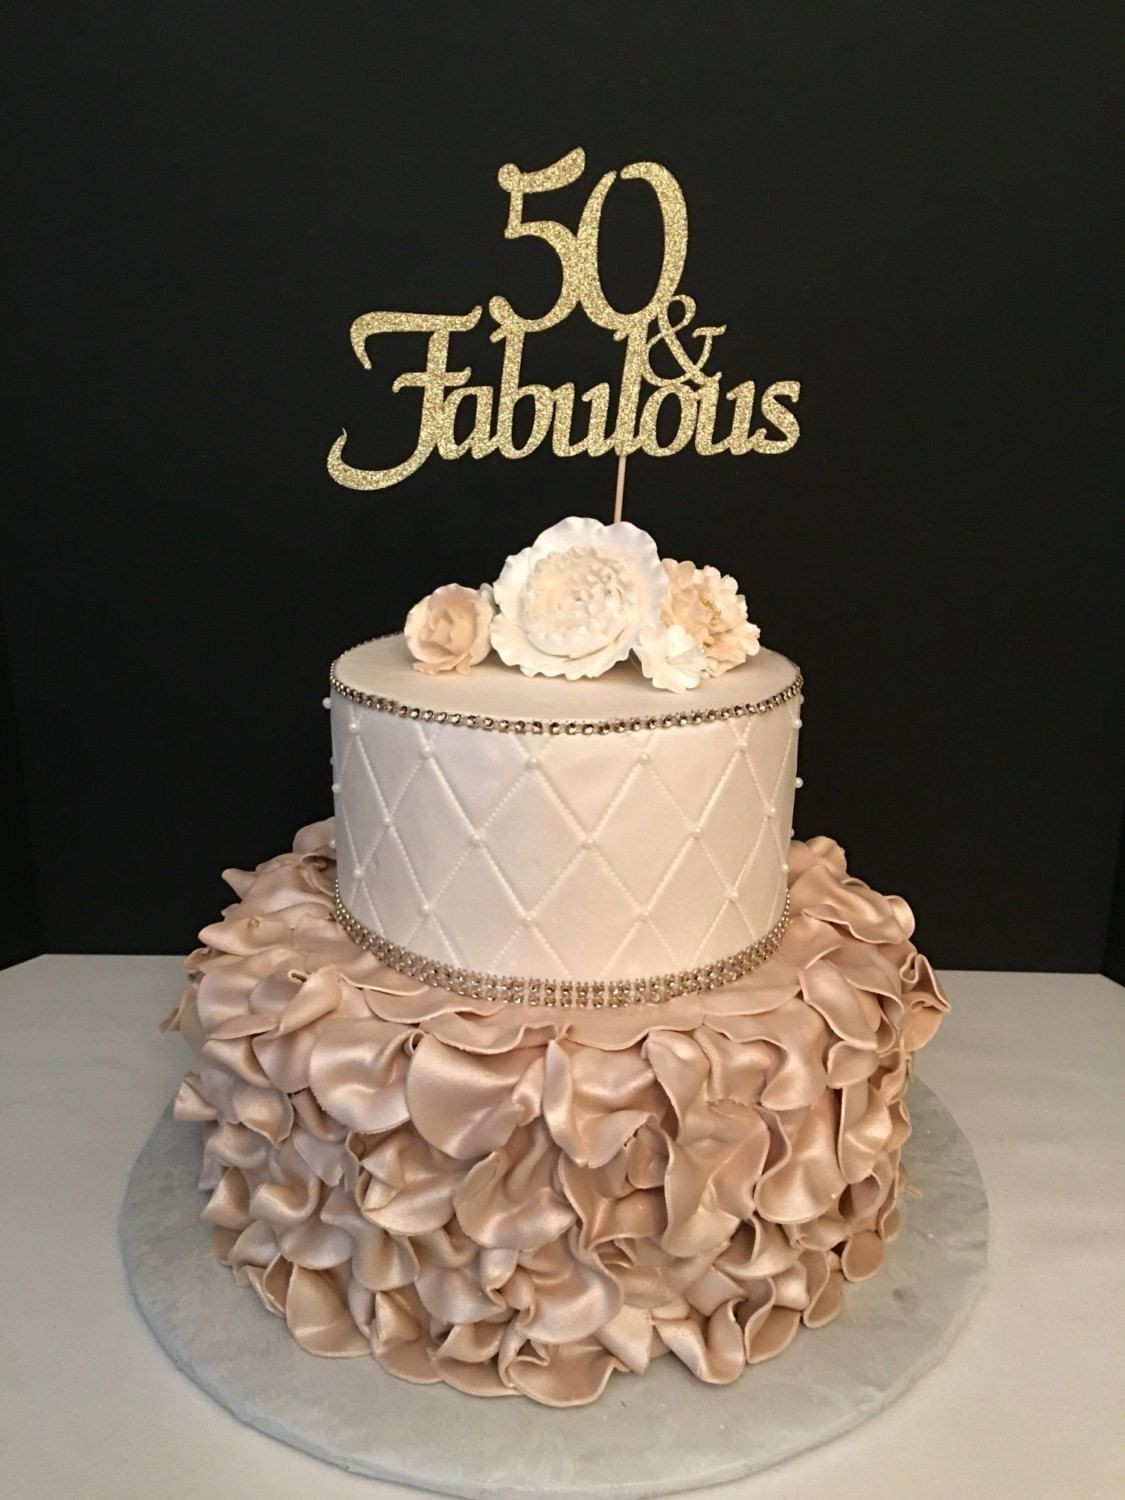 50th Birthday Cake Ideas For Her  50Th Birthday Cakes For Her Any Number Gold Glitter 50th